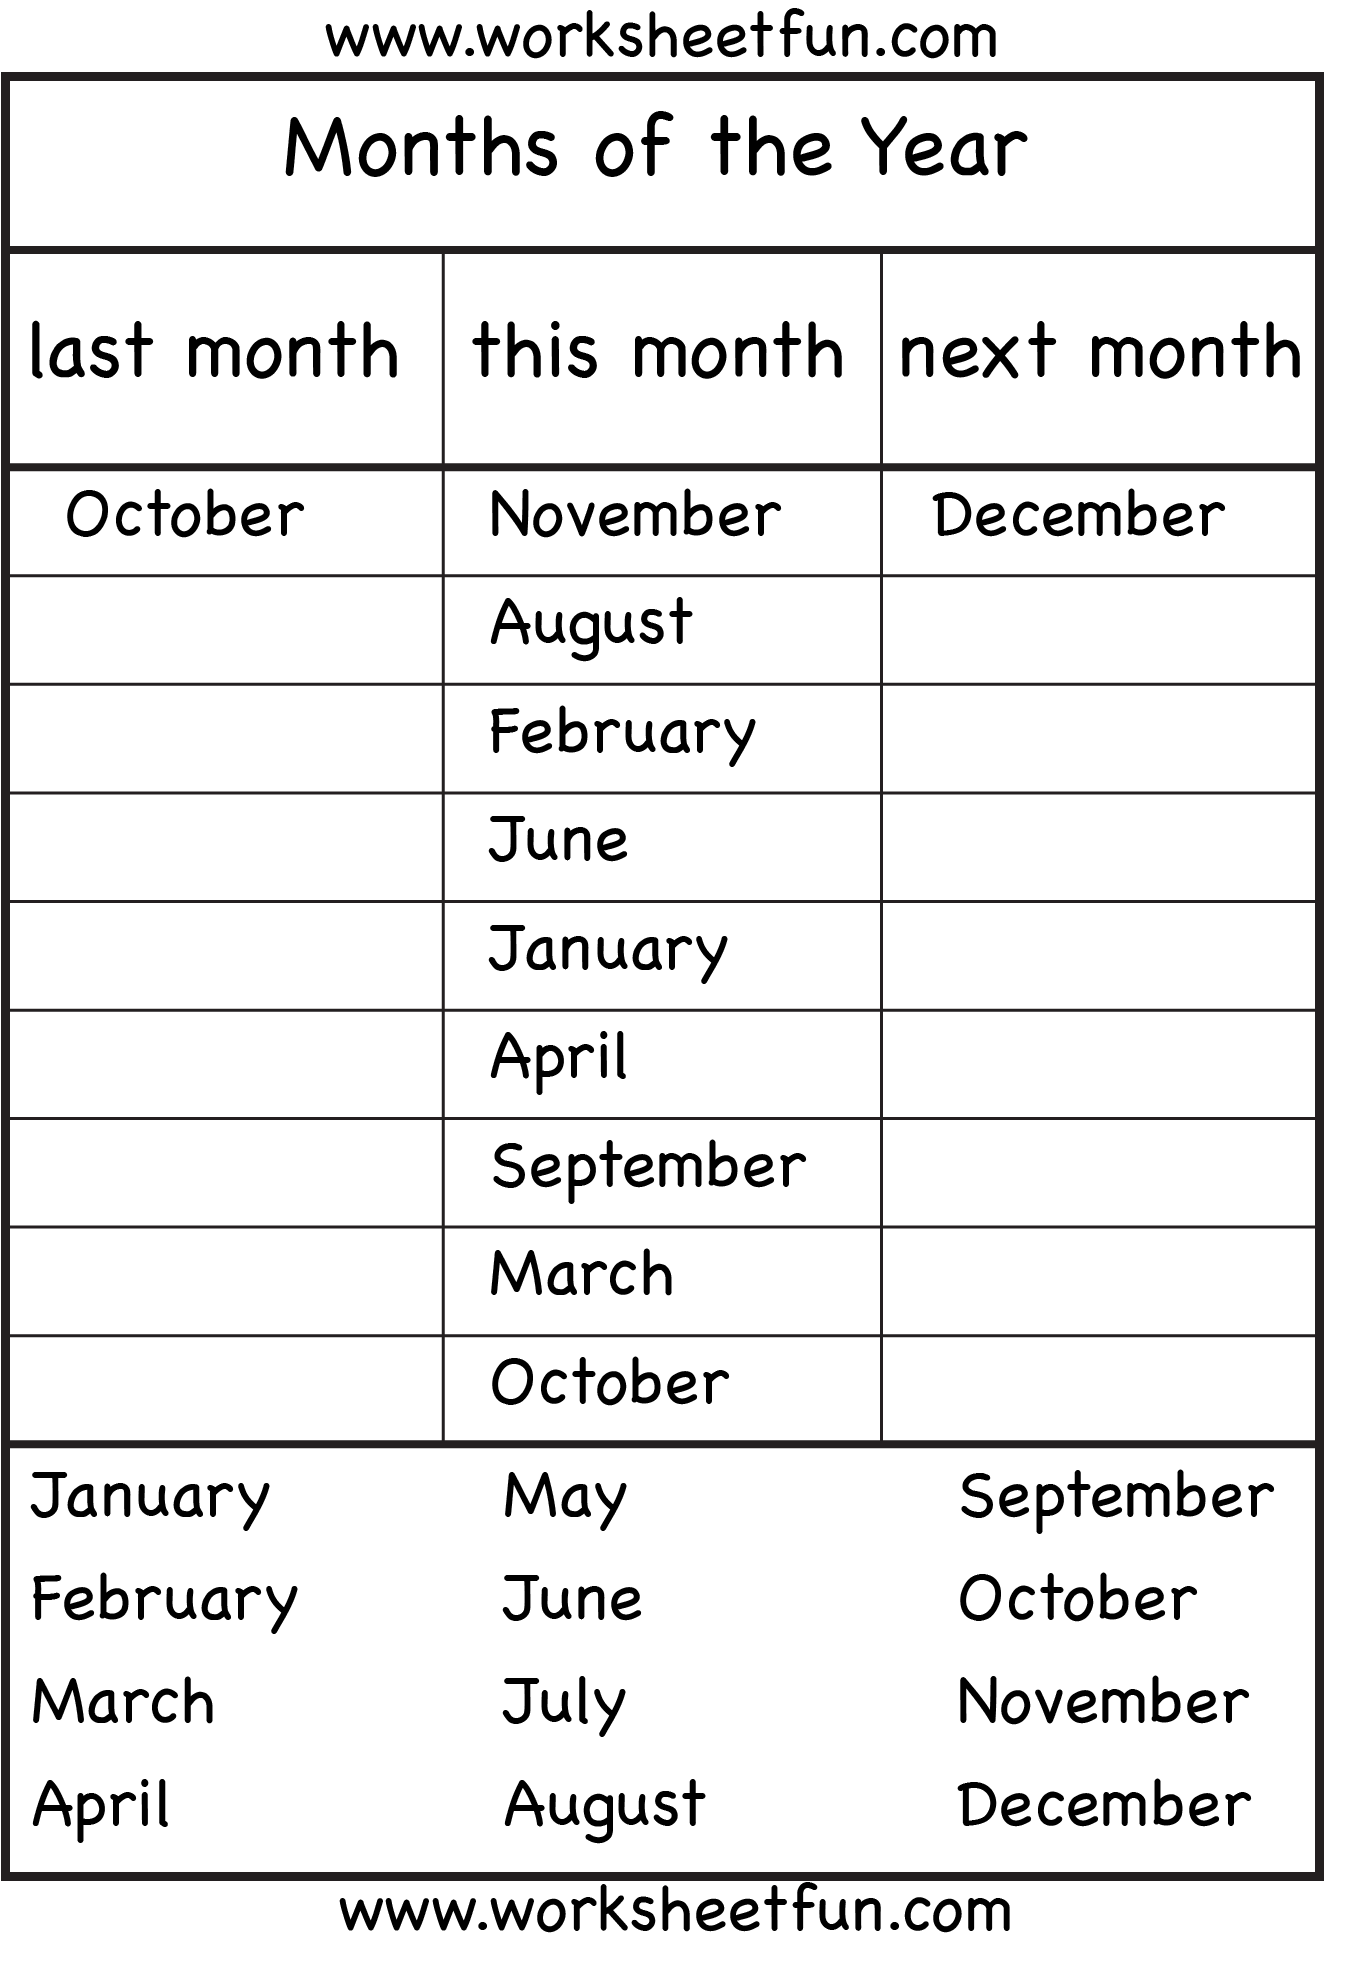 Worksheets Year Month Worksheet 17 best images about months of the year on pinterest seasons what month and free calendar